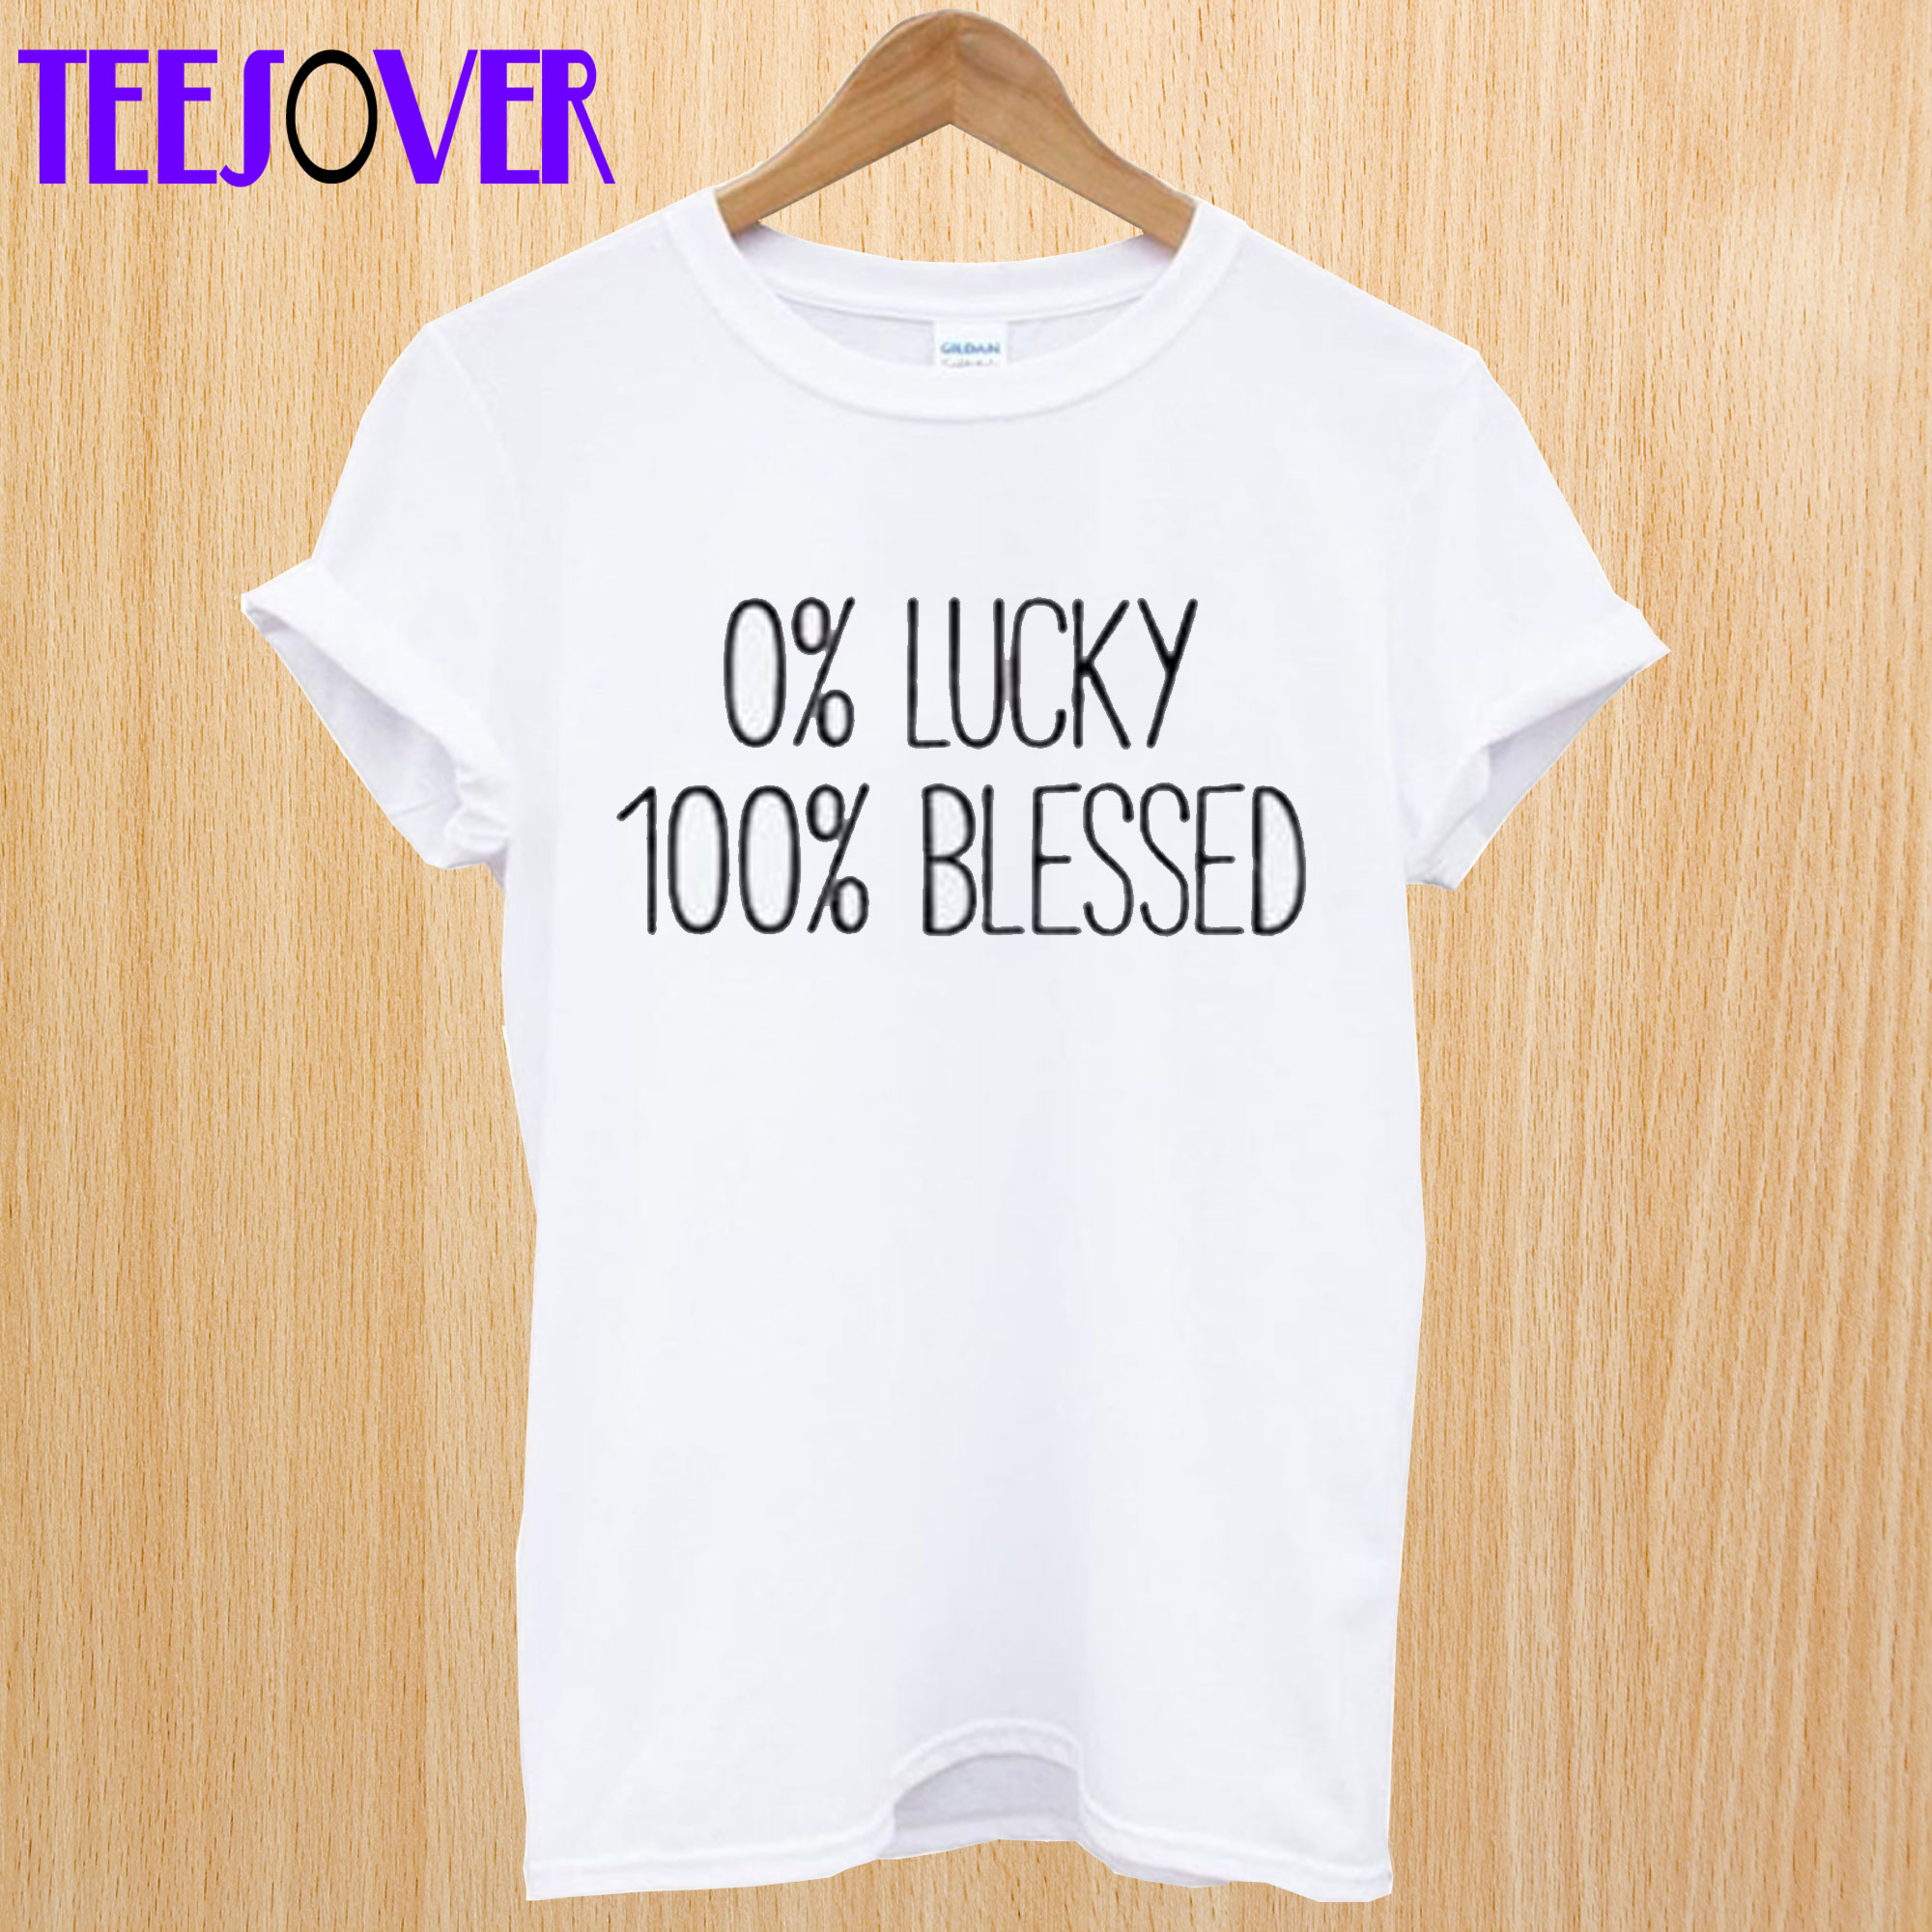 0 Lucky 100 Blessed T Shirt